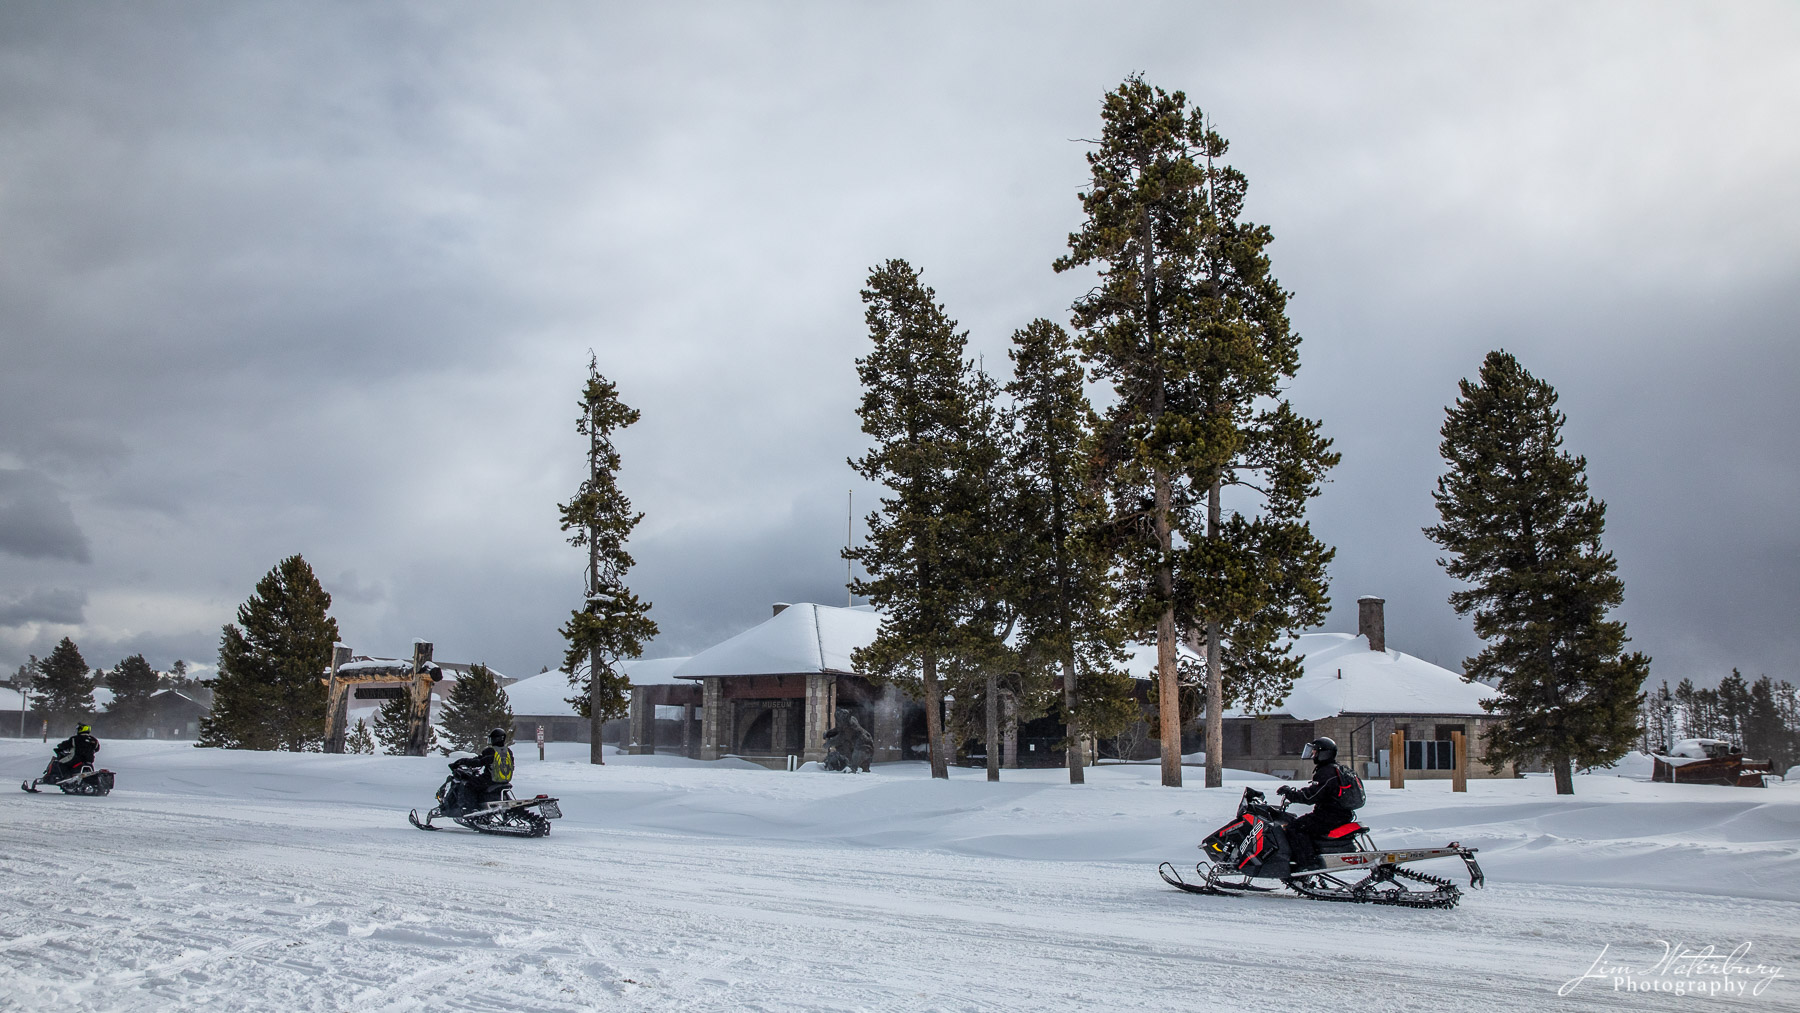 Snowmobiles parade down one of the main streets in West Yellowstone, MT in mid-winter.